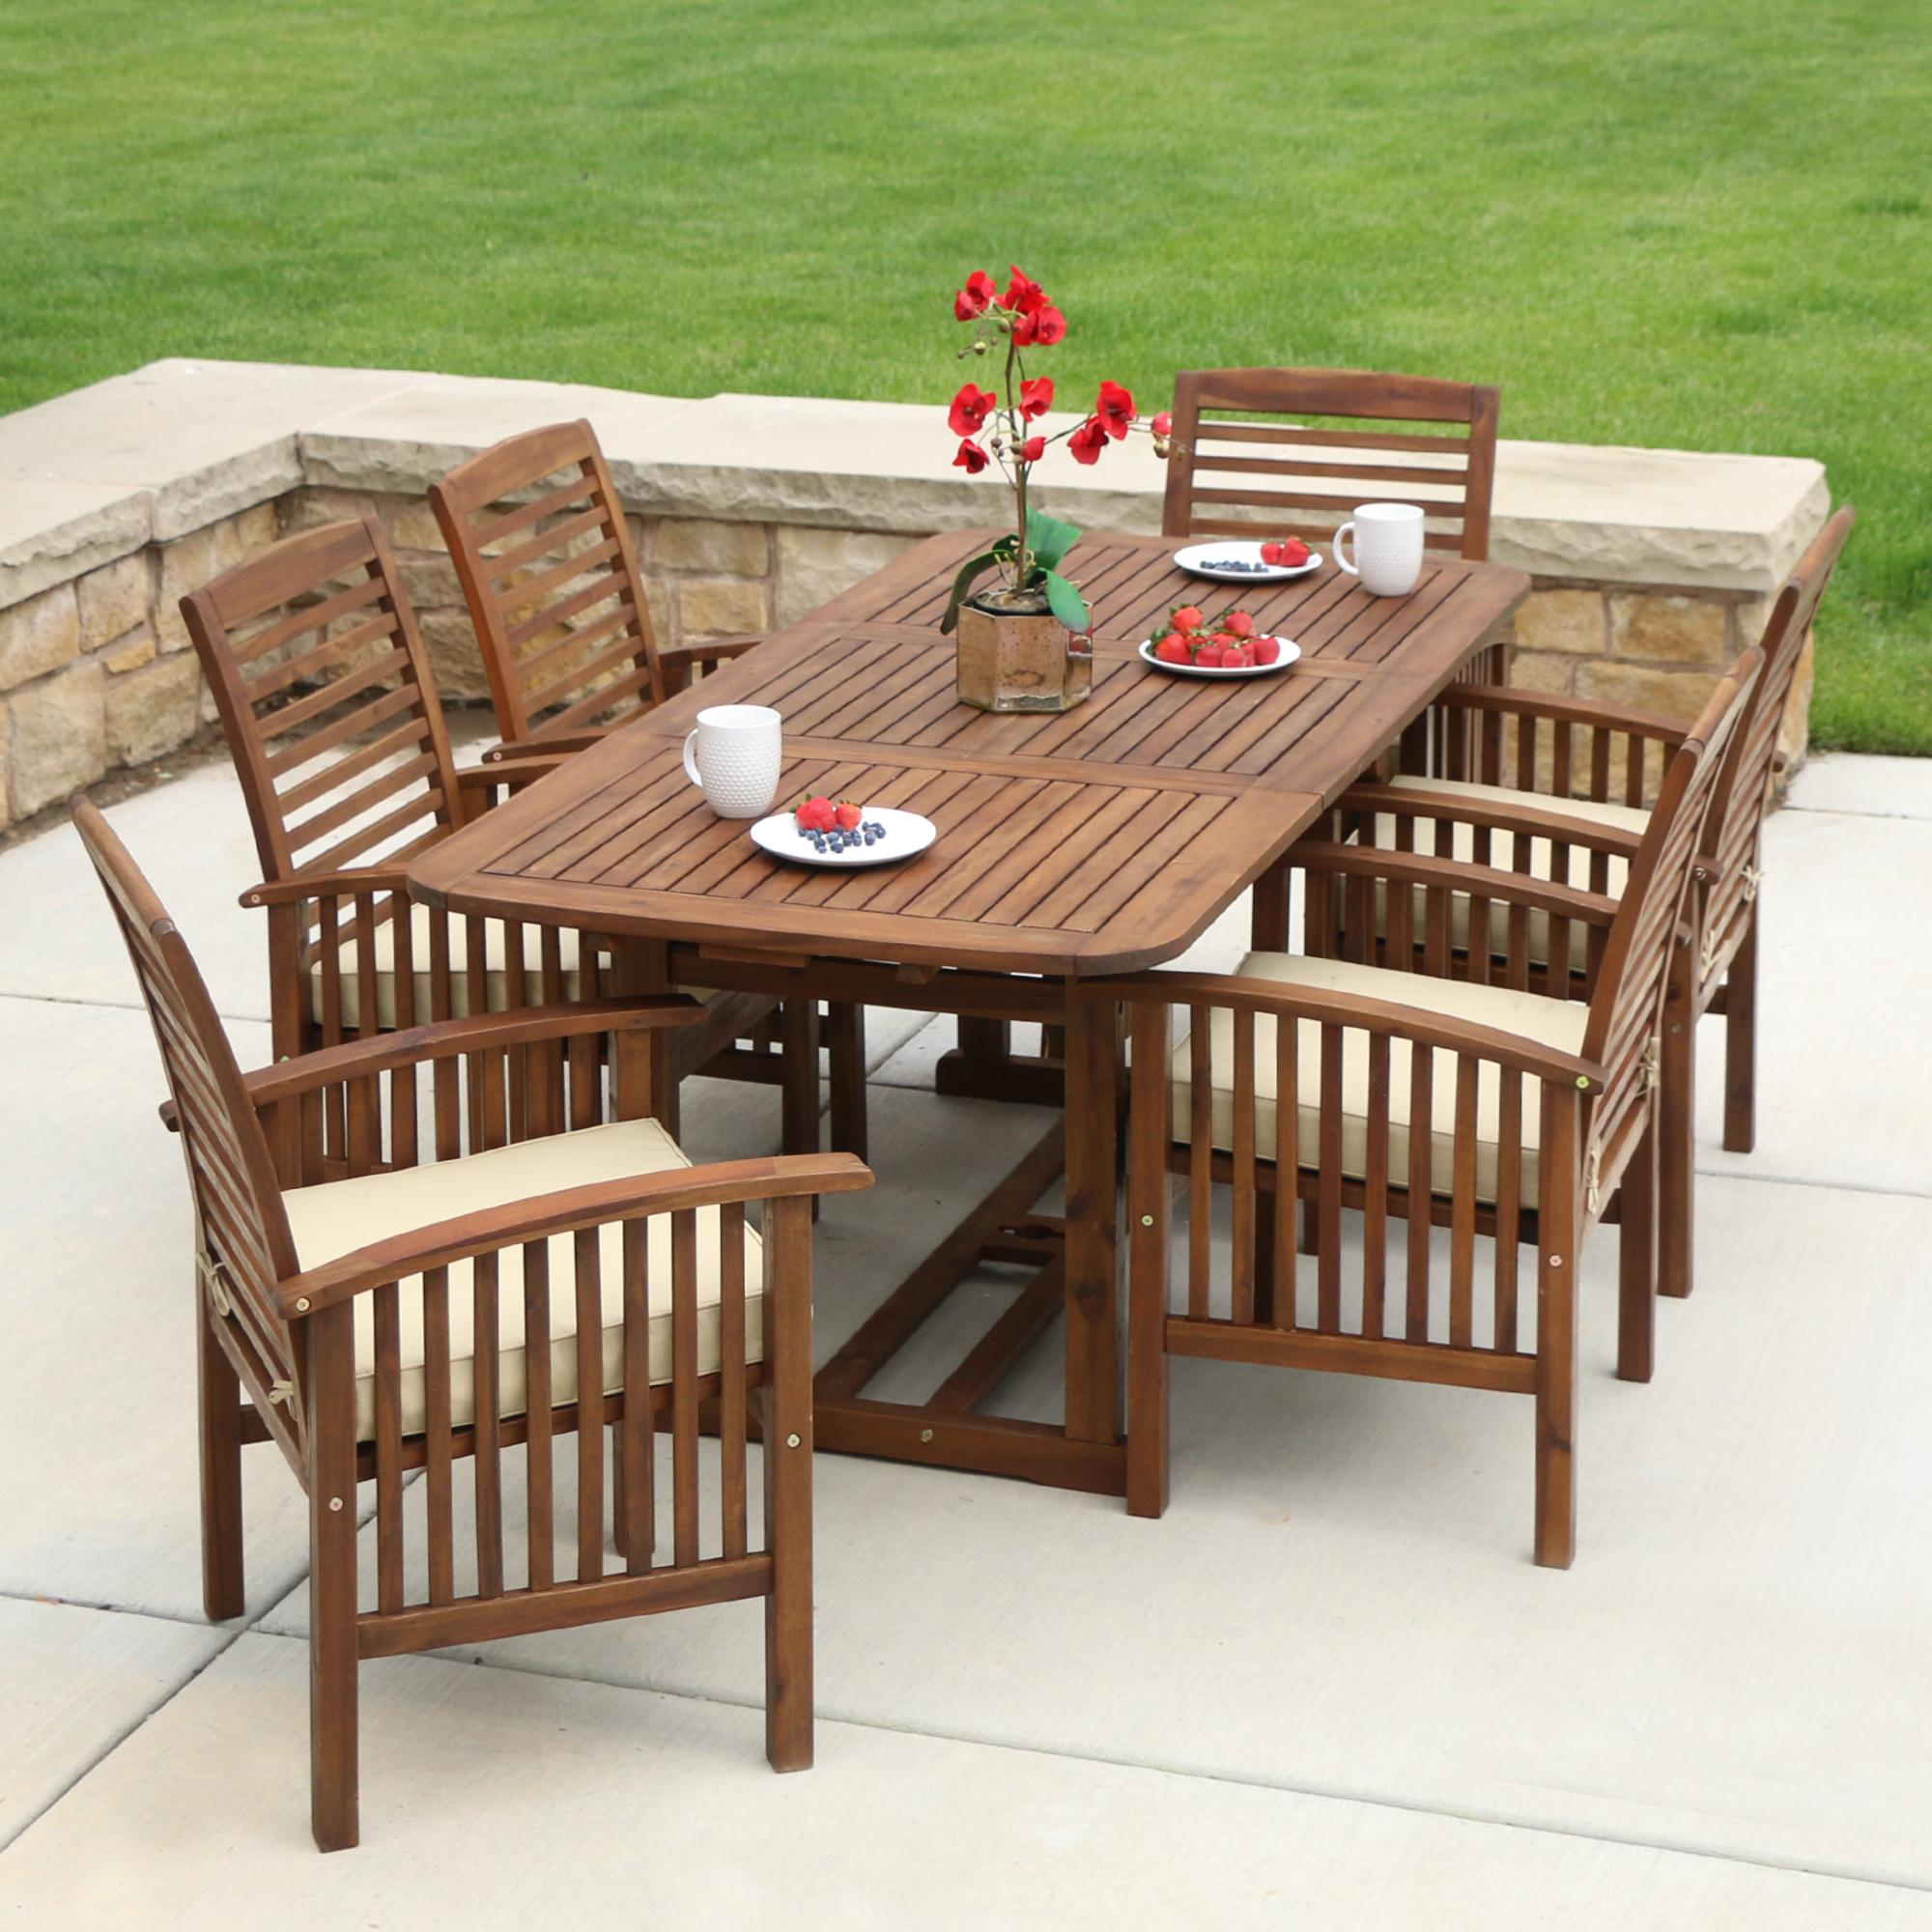 View larger. Amazon com   WE Furniture Solid Acacia Wood Patio Chairs  Set of 2